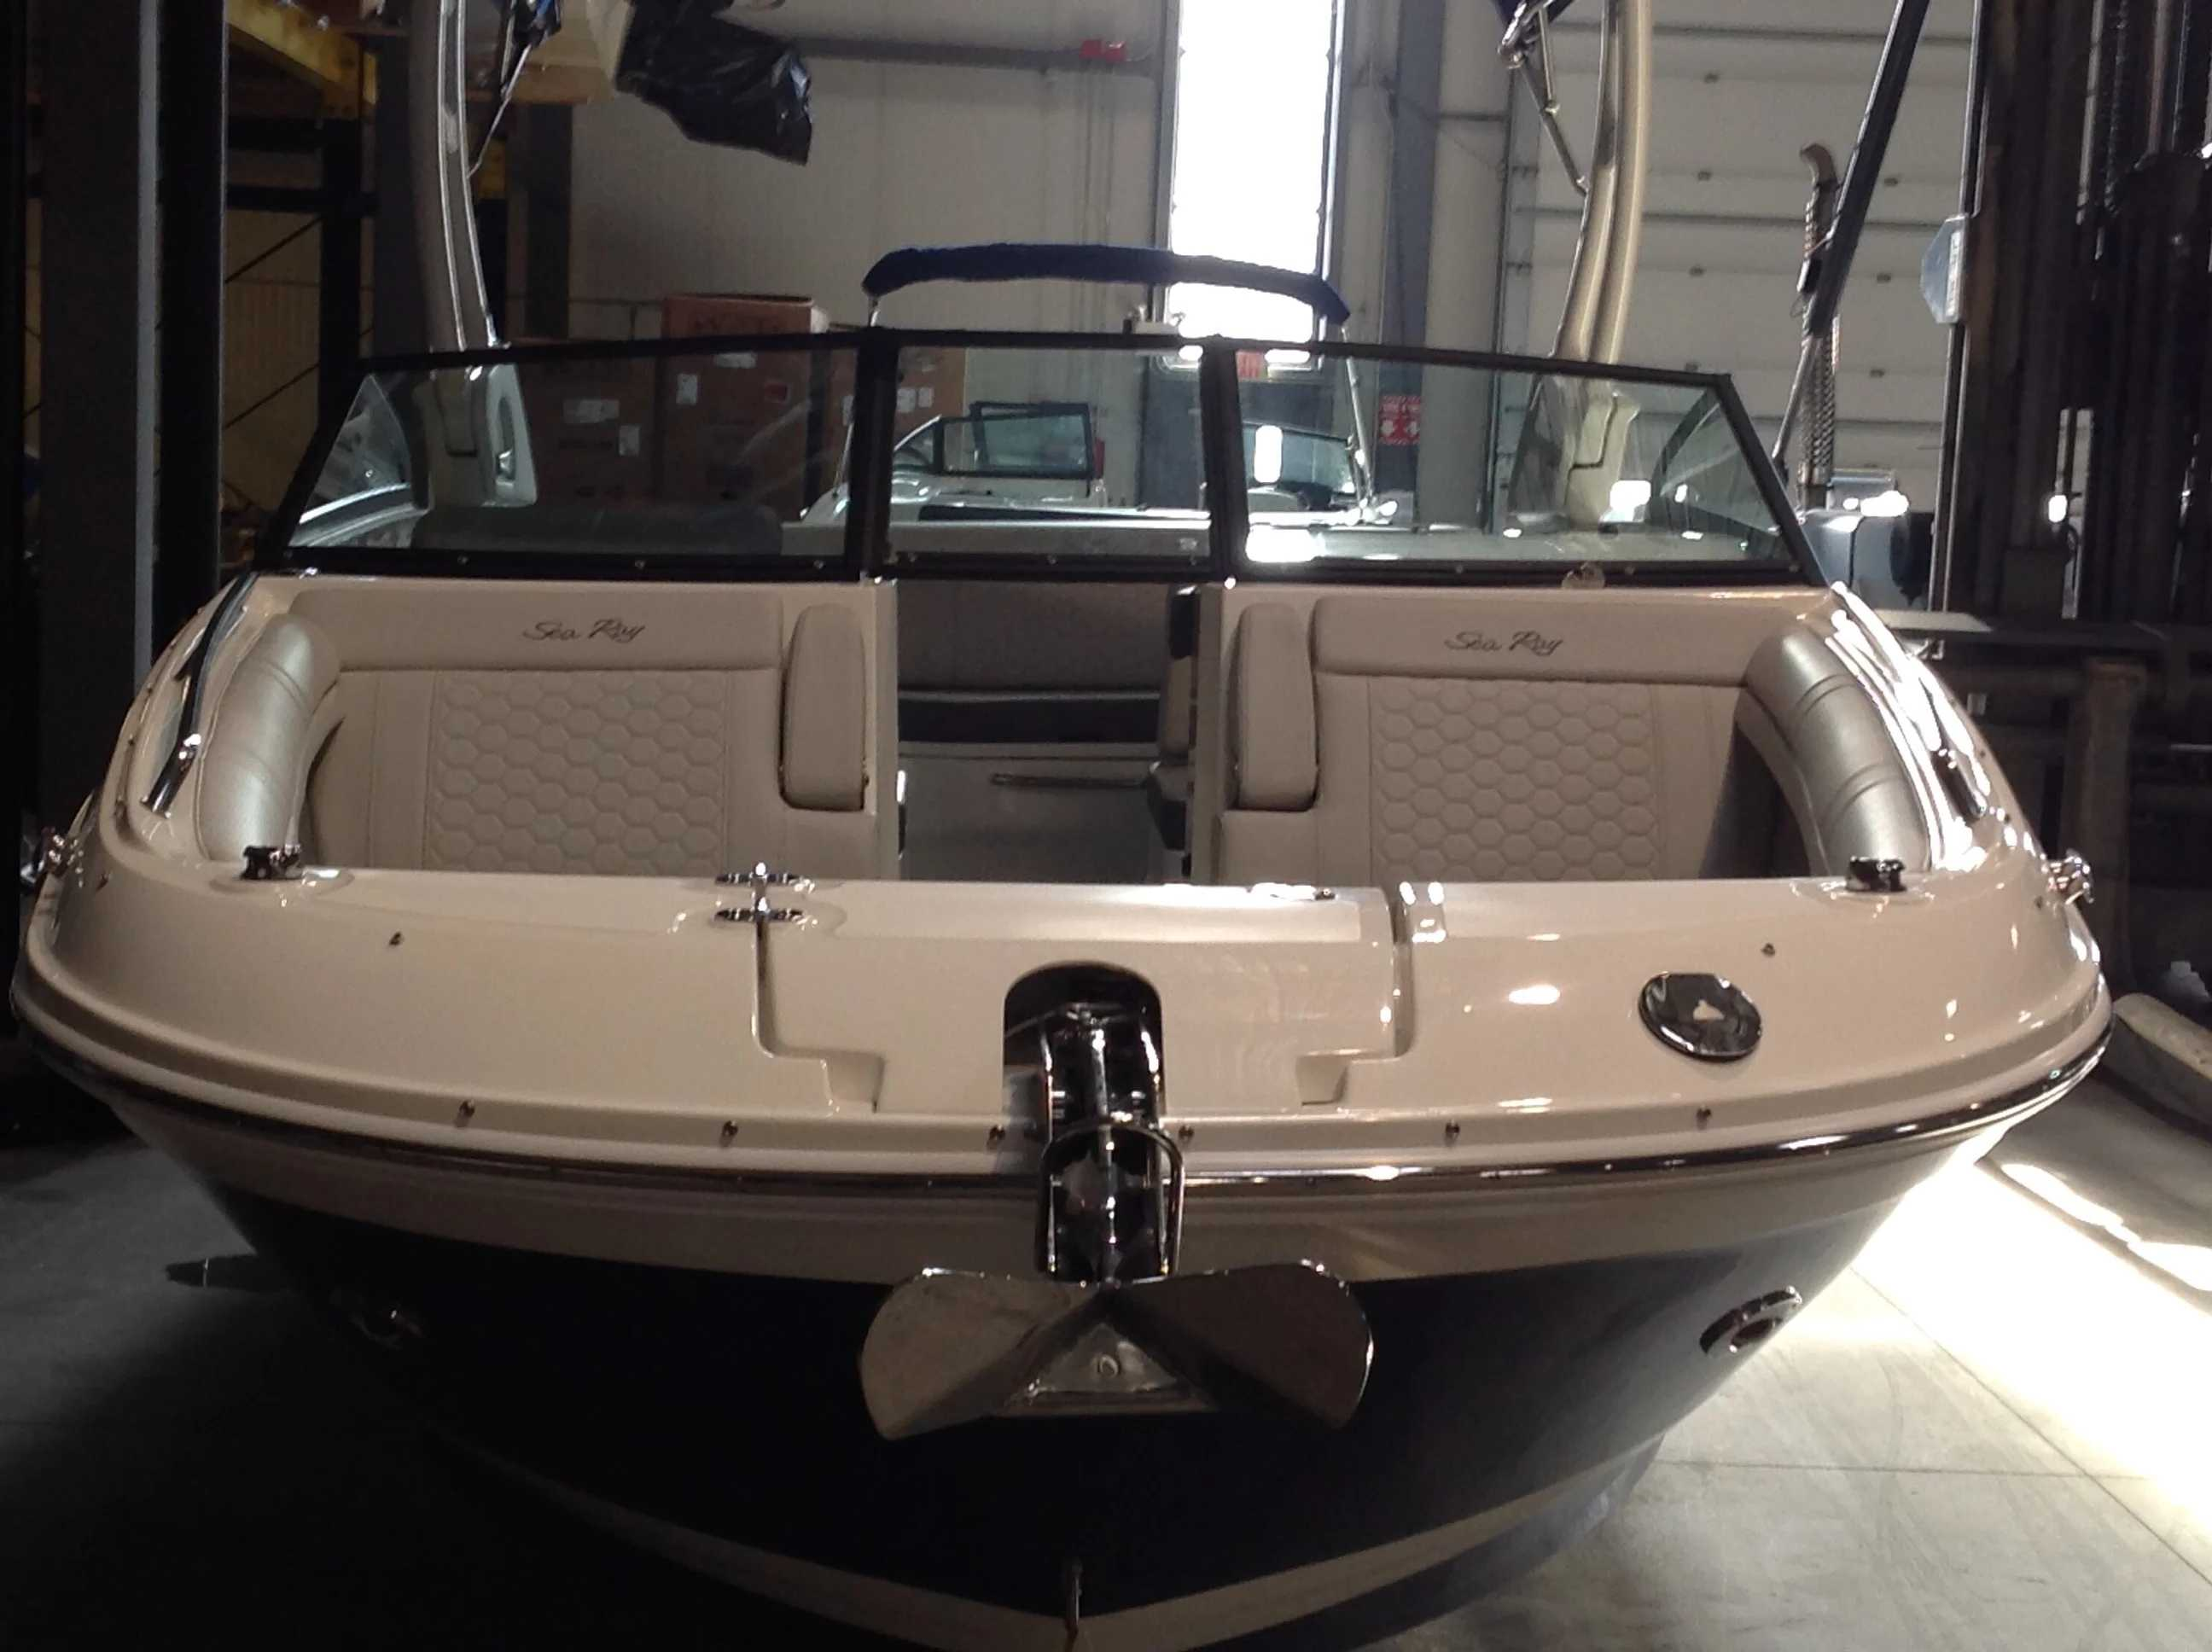 2021 Sea Ray boat for sale, model of the boat is 270 SDX & Image # 5 of 21